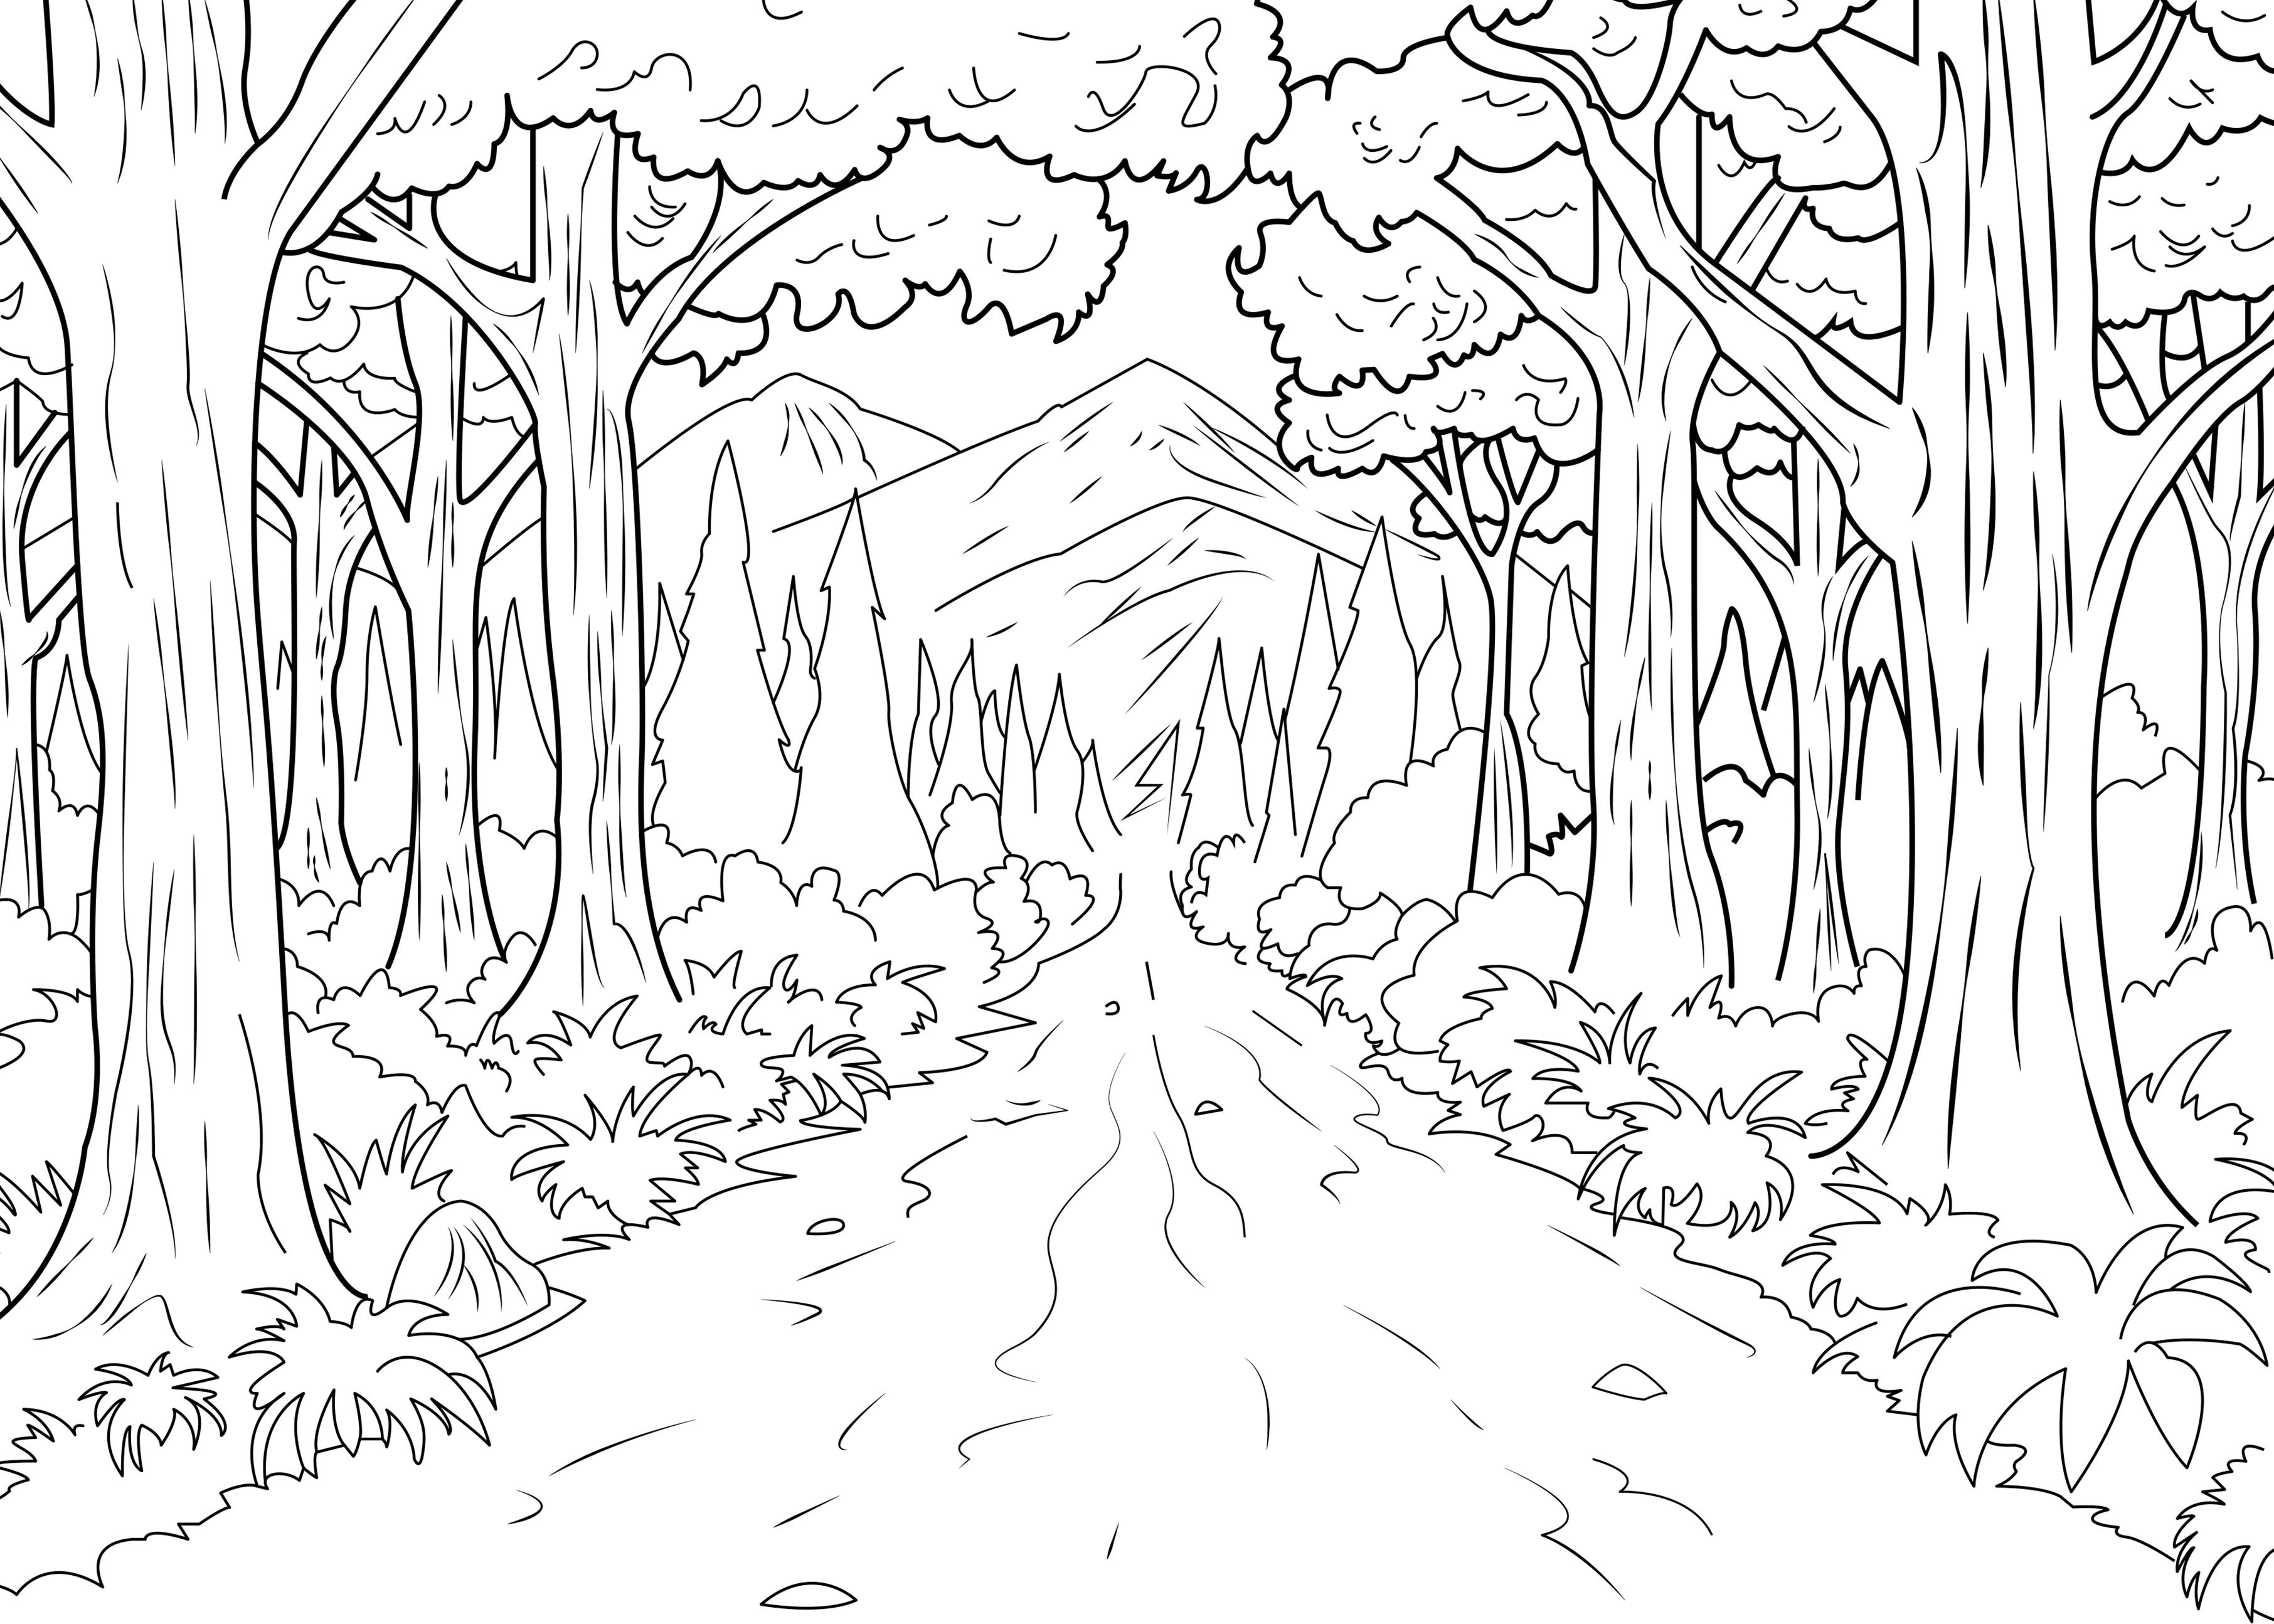 A coloring page of forest made by Celine, From the gallery